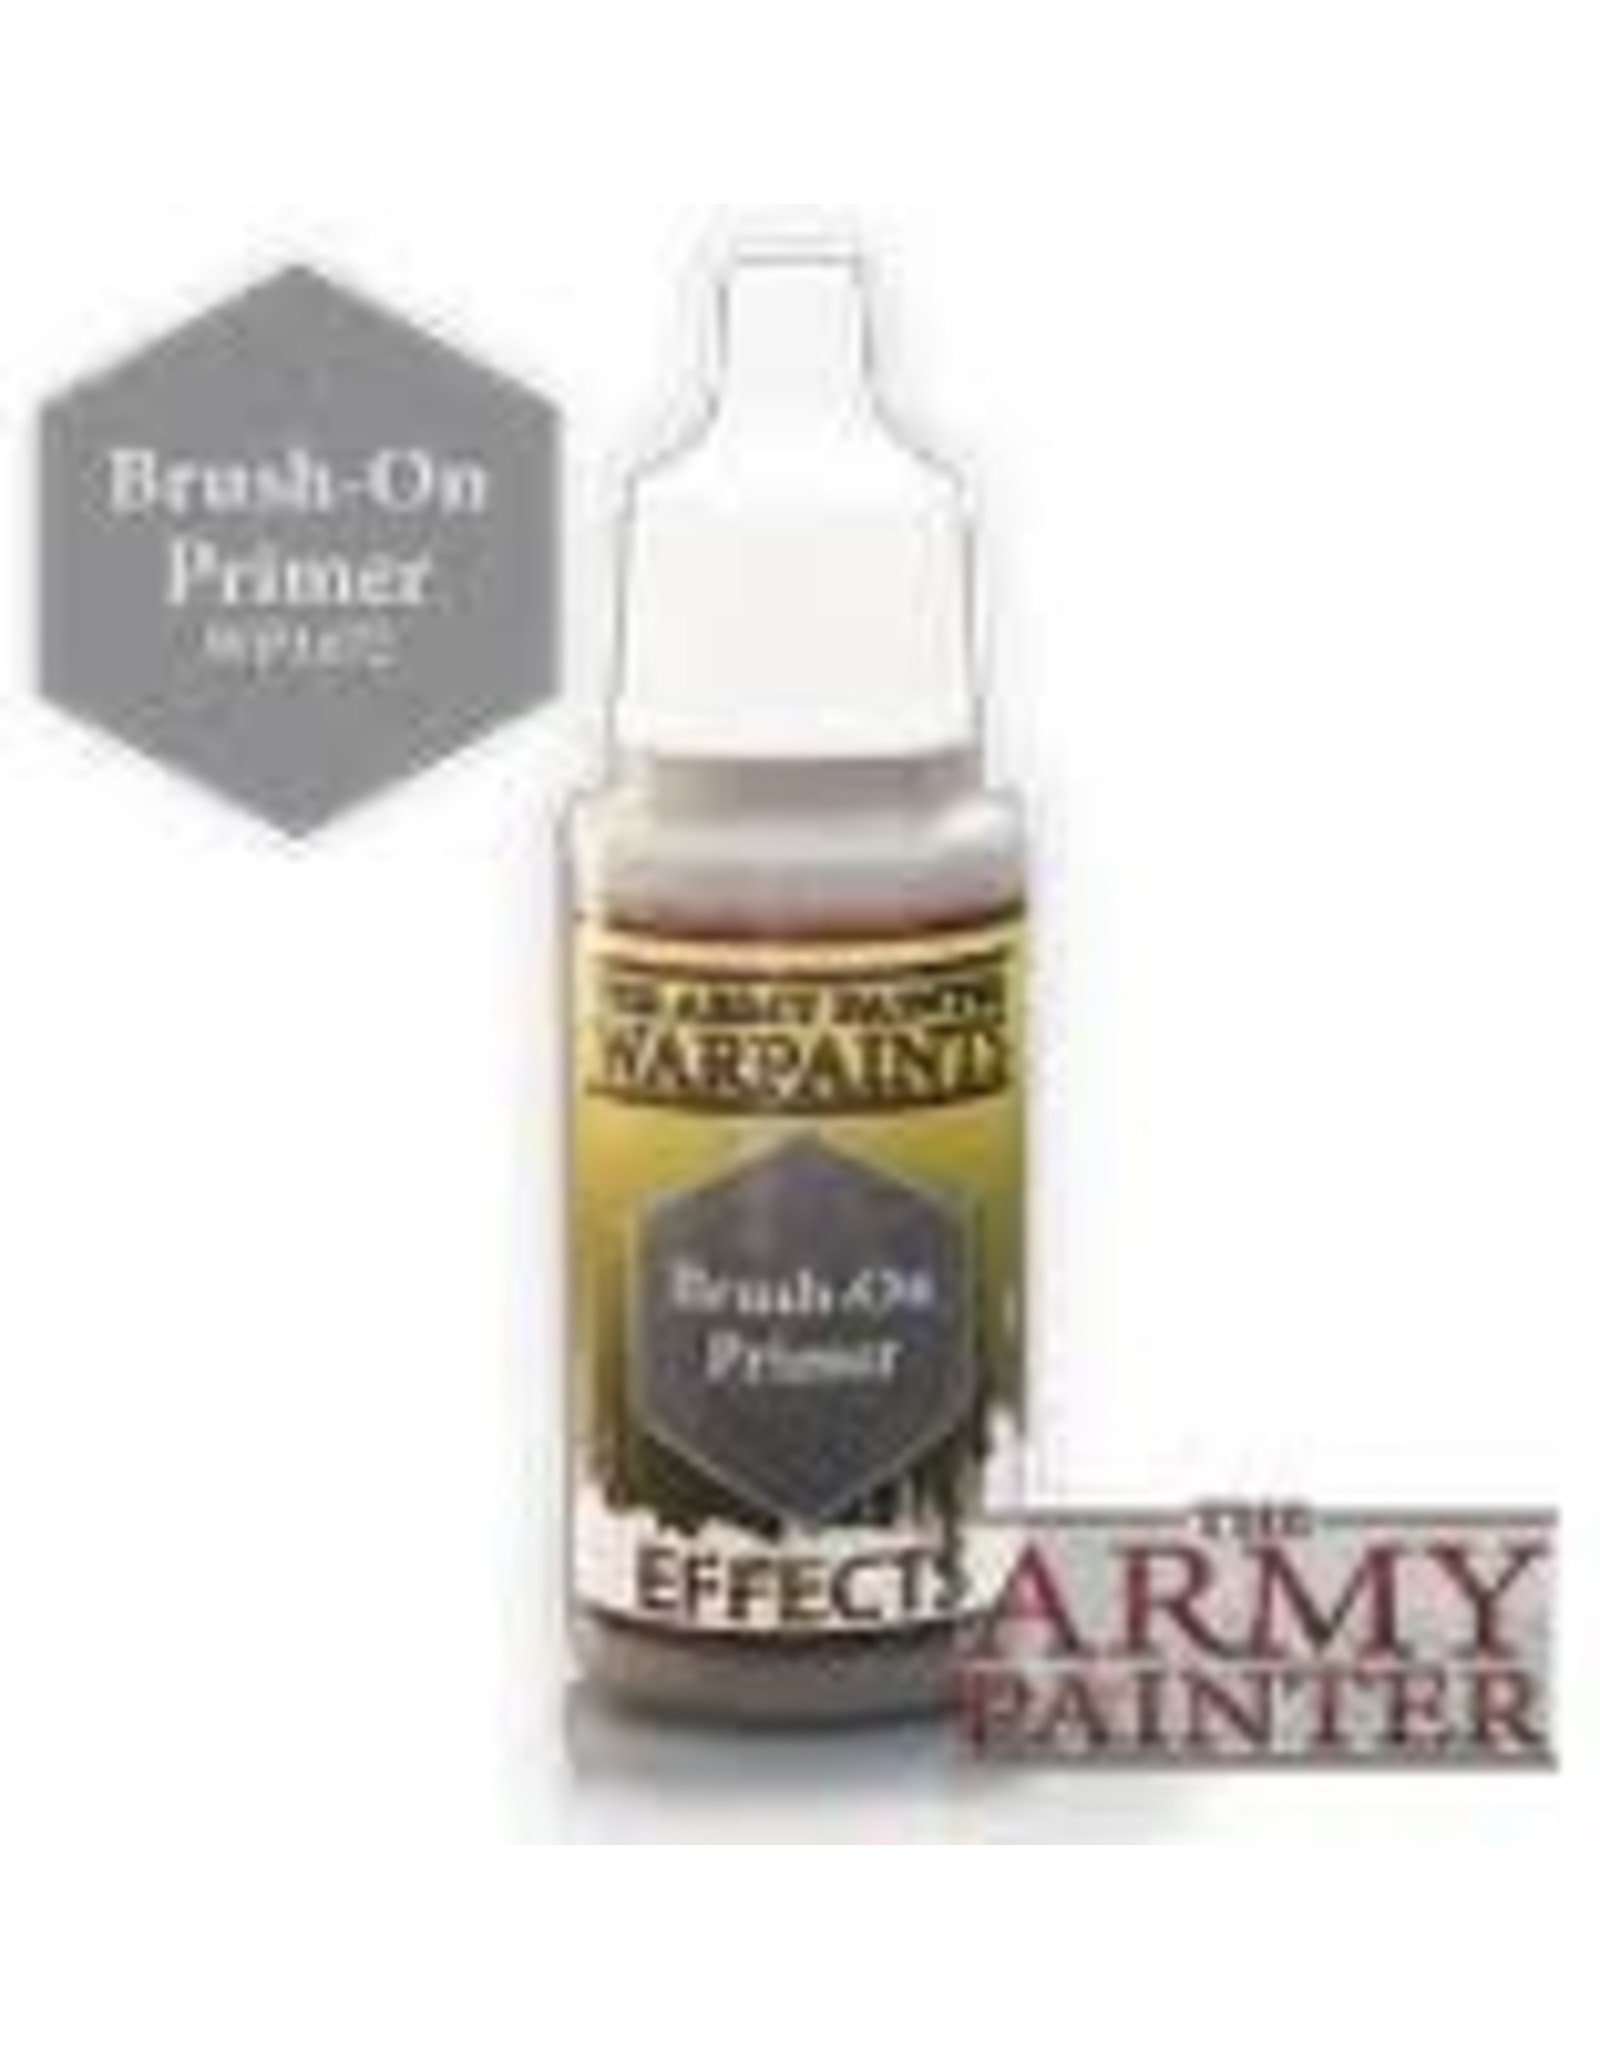 Army Painter Army Painter: Brush-On Primer